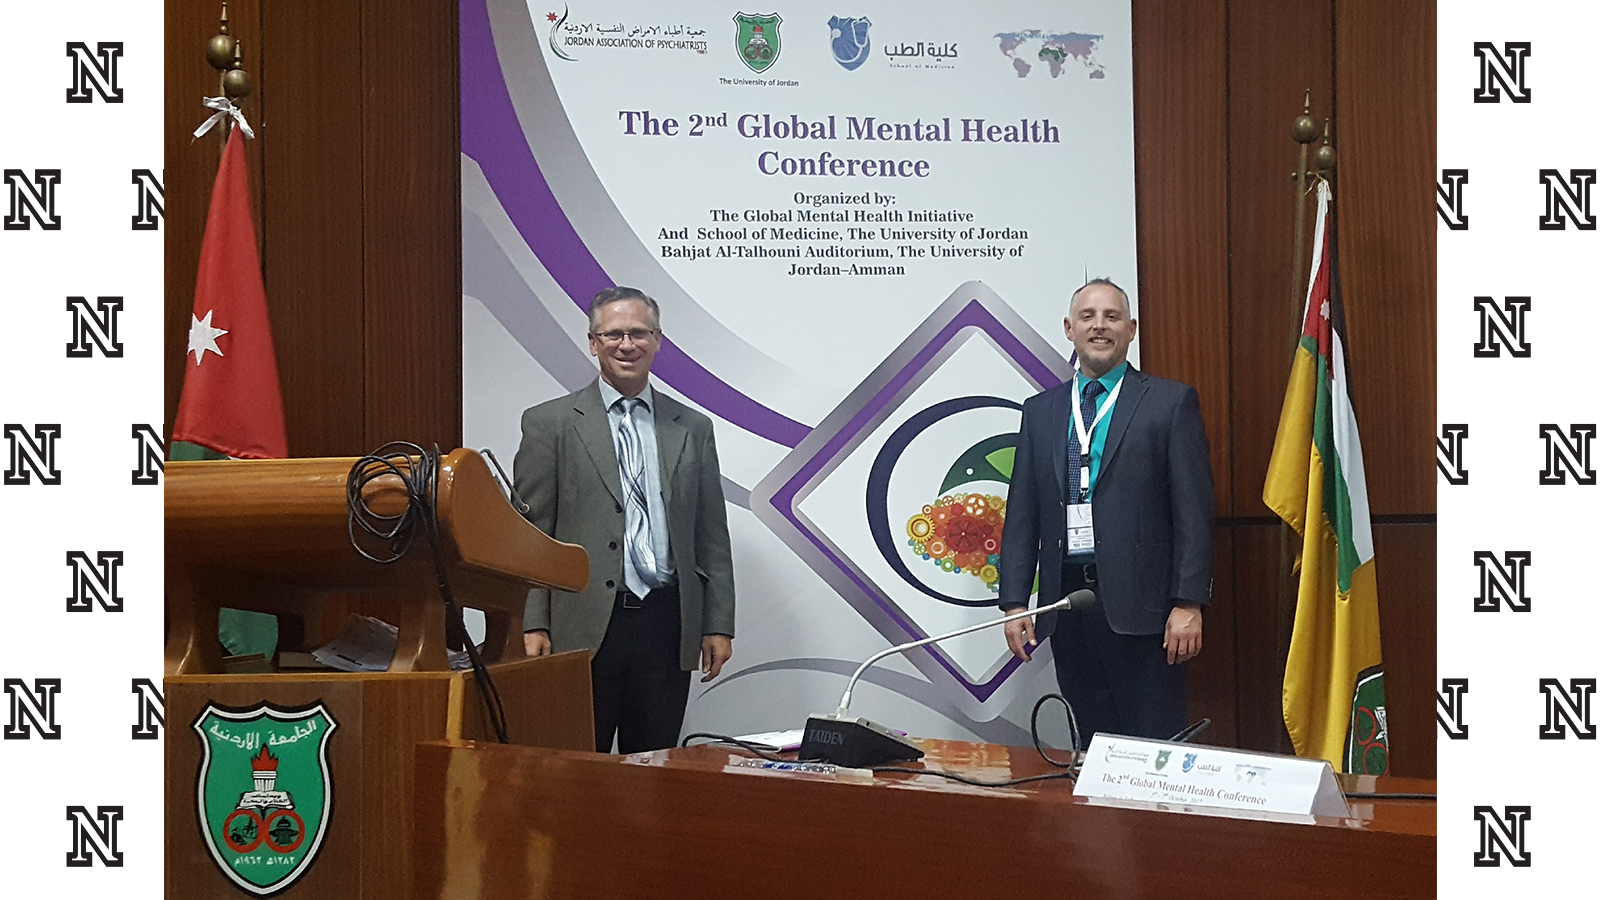 Bischoff and Springer join collaborative mental health initiative in Jordan